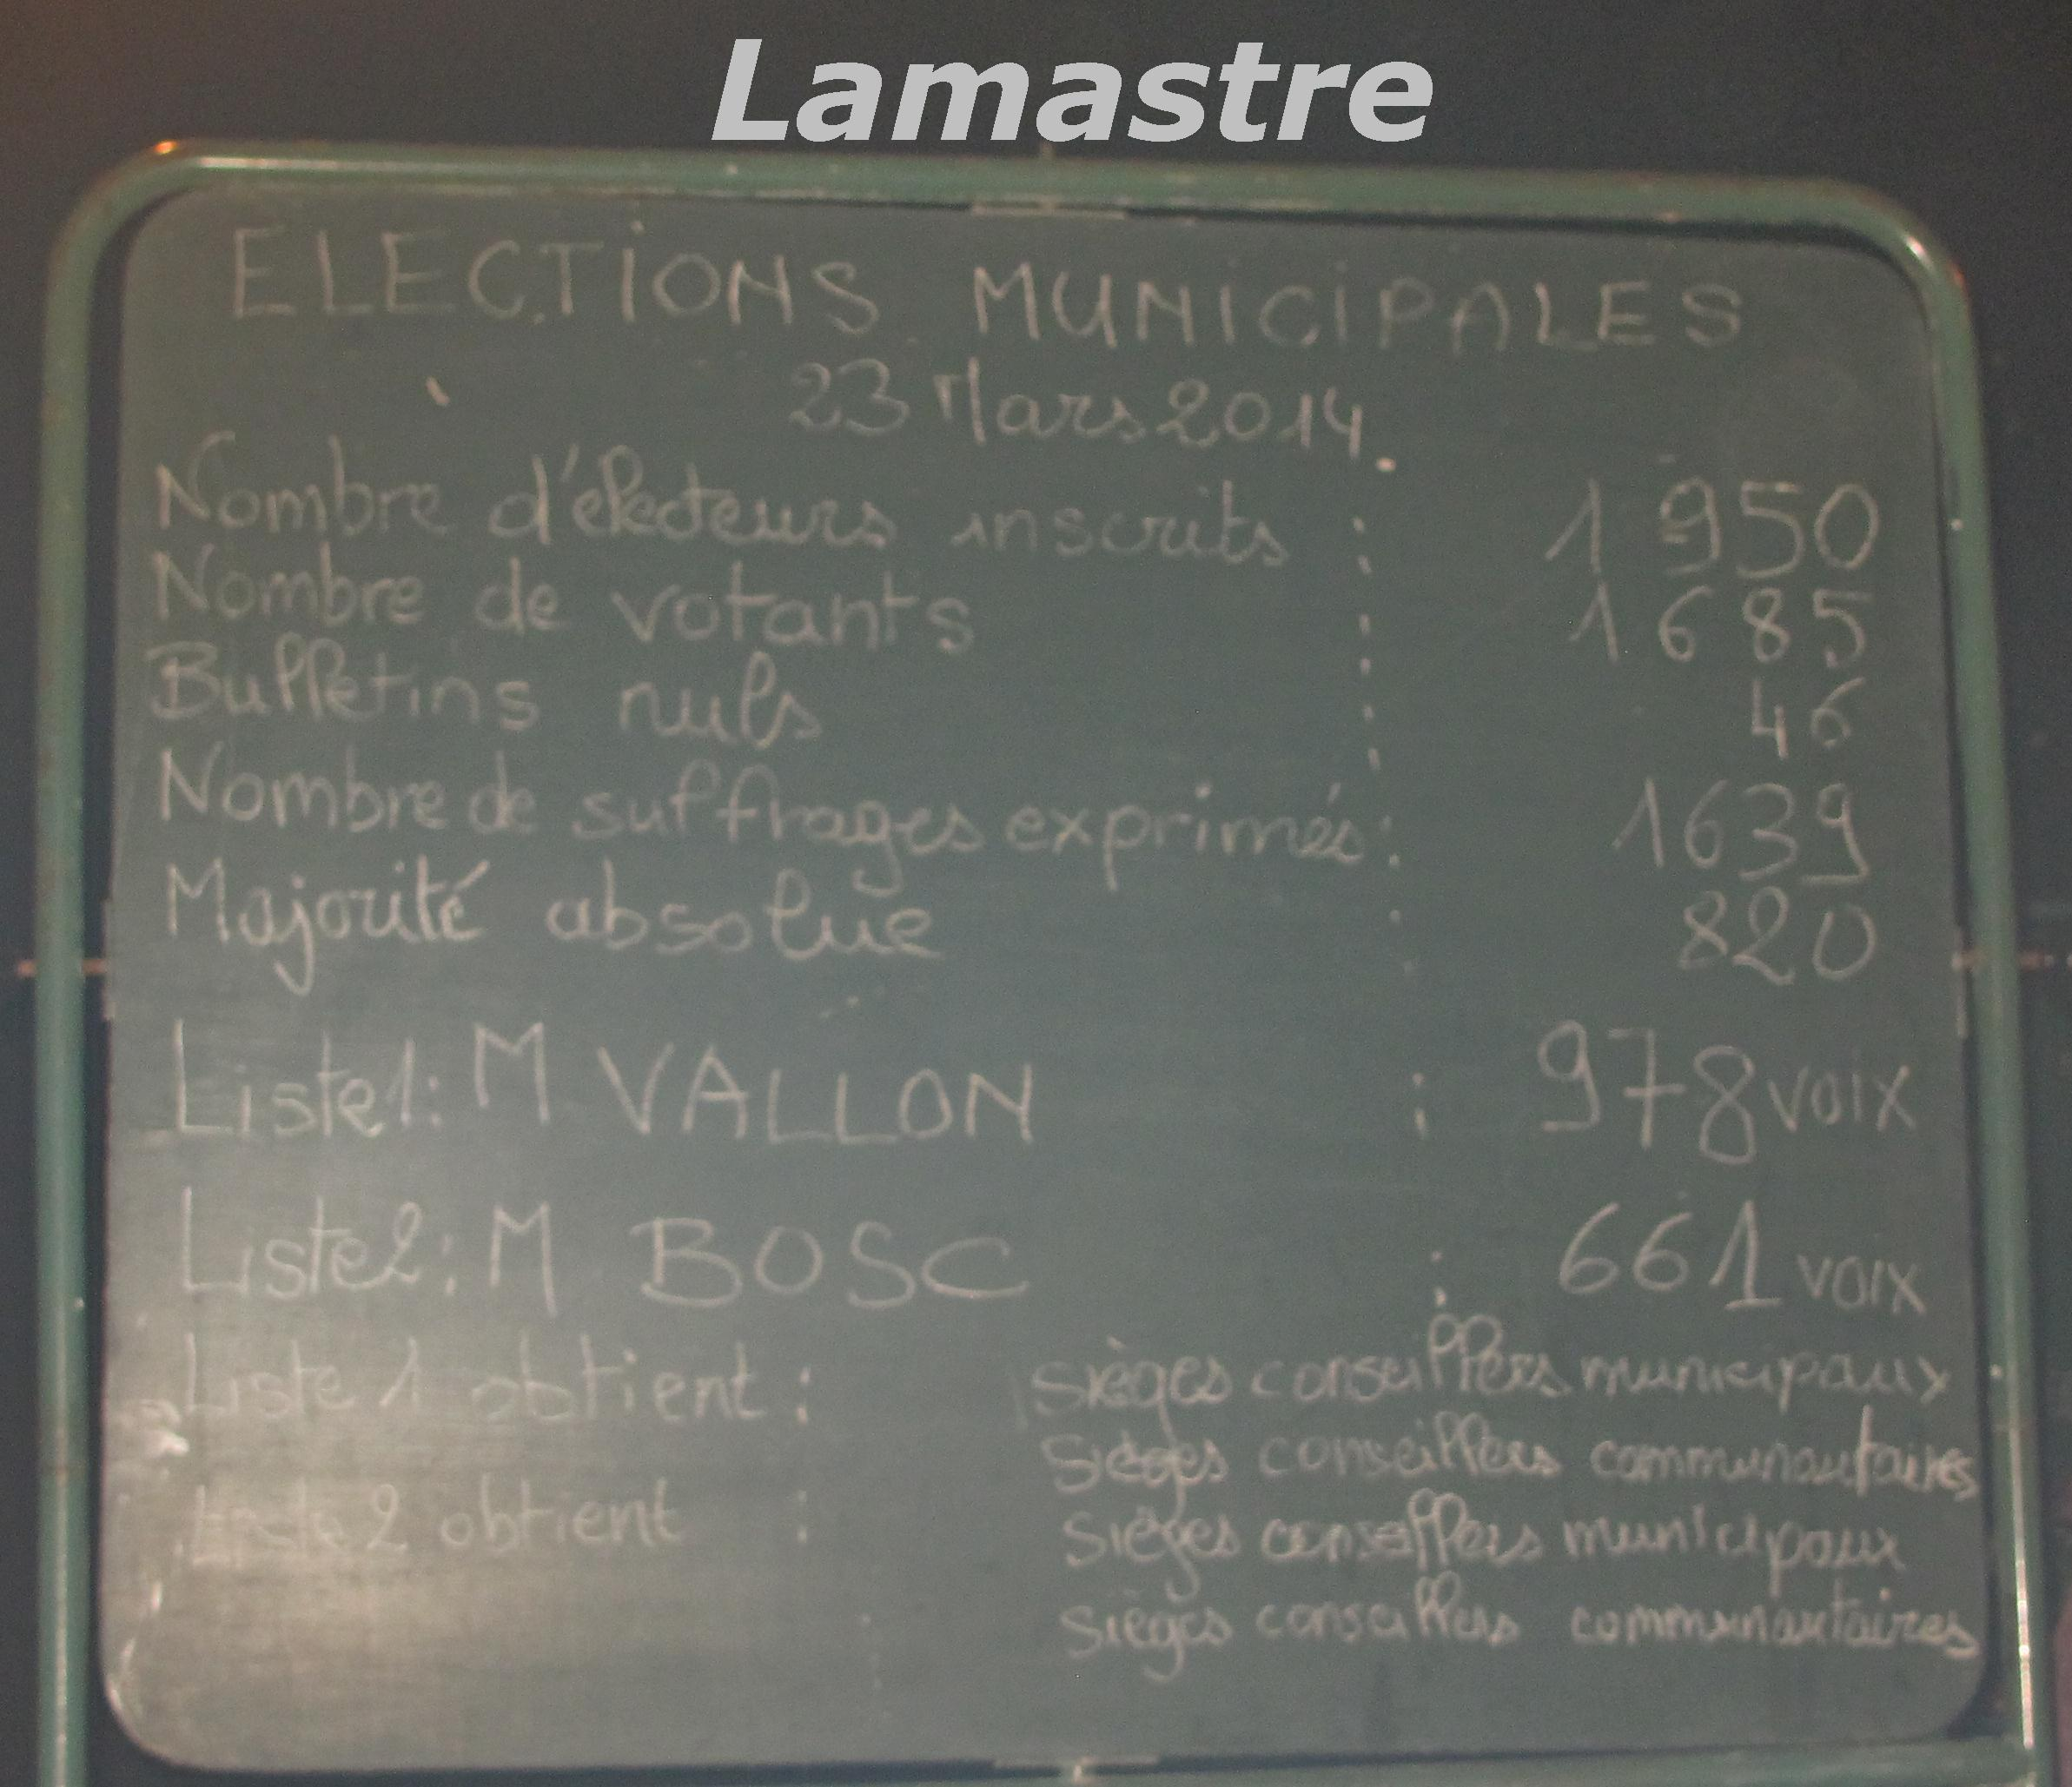 resultat election  municipale lamastre 2014